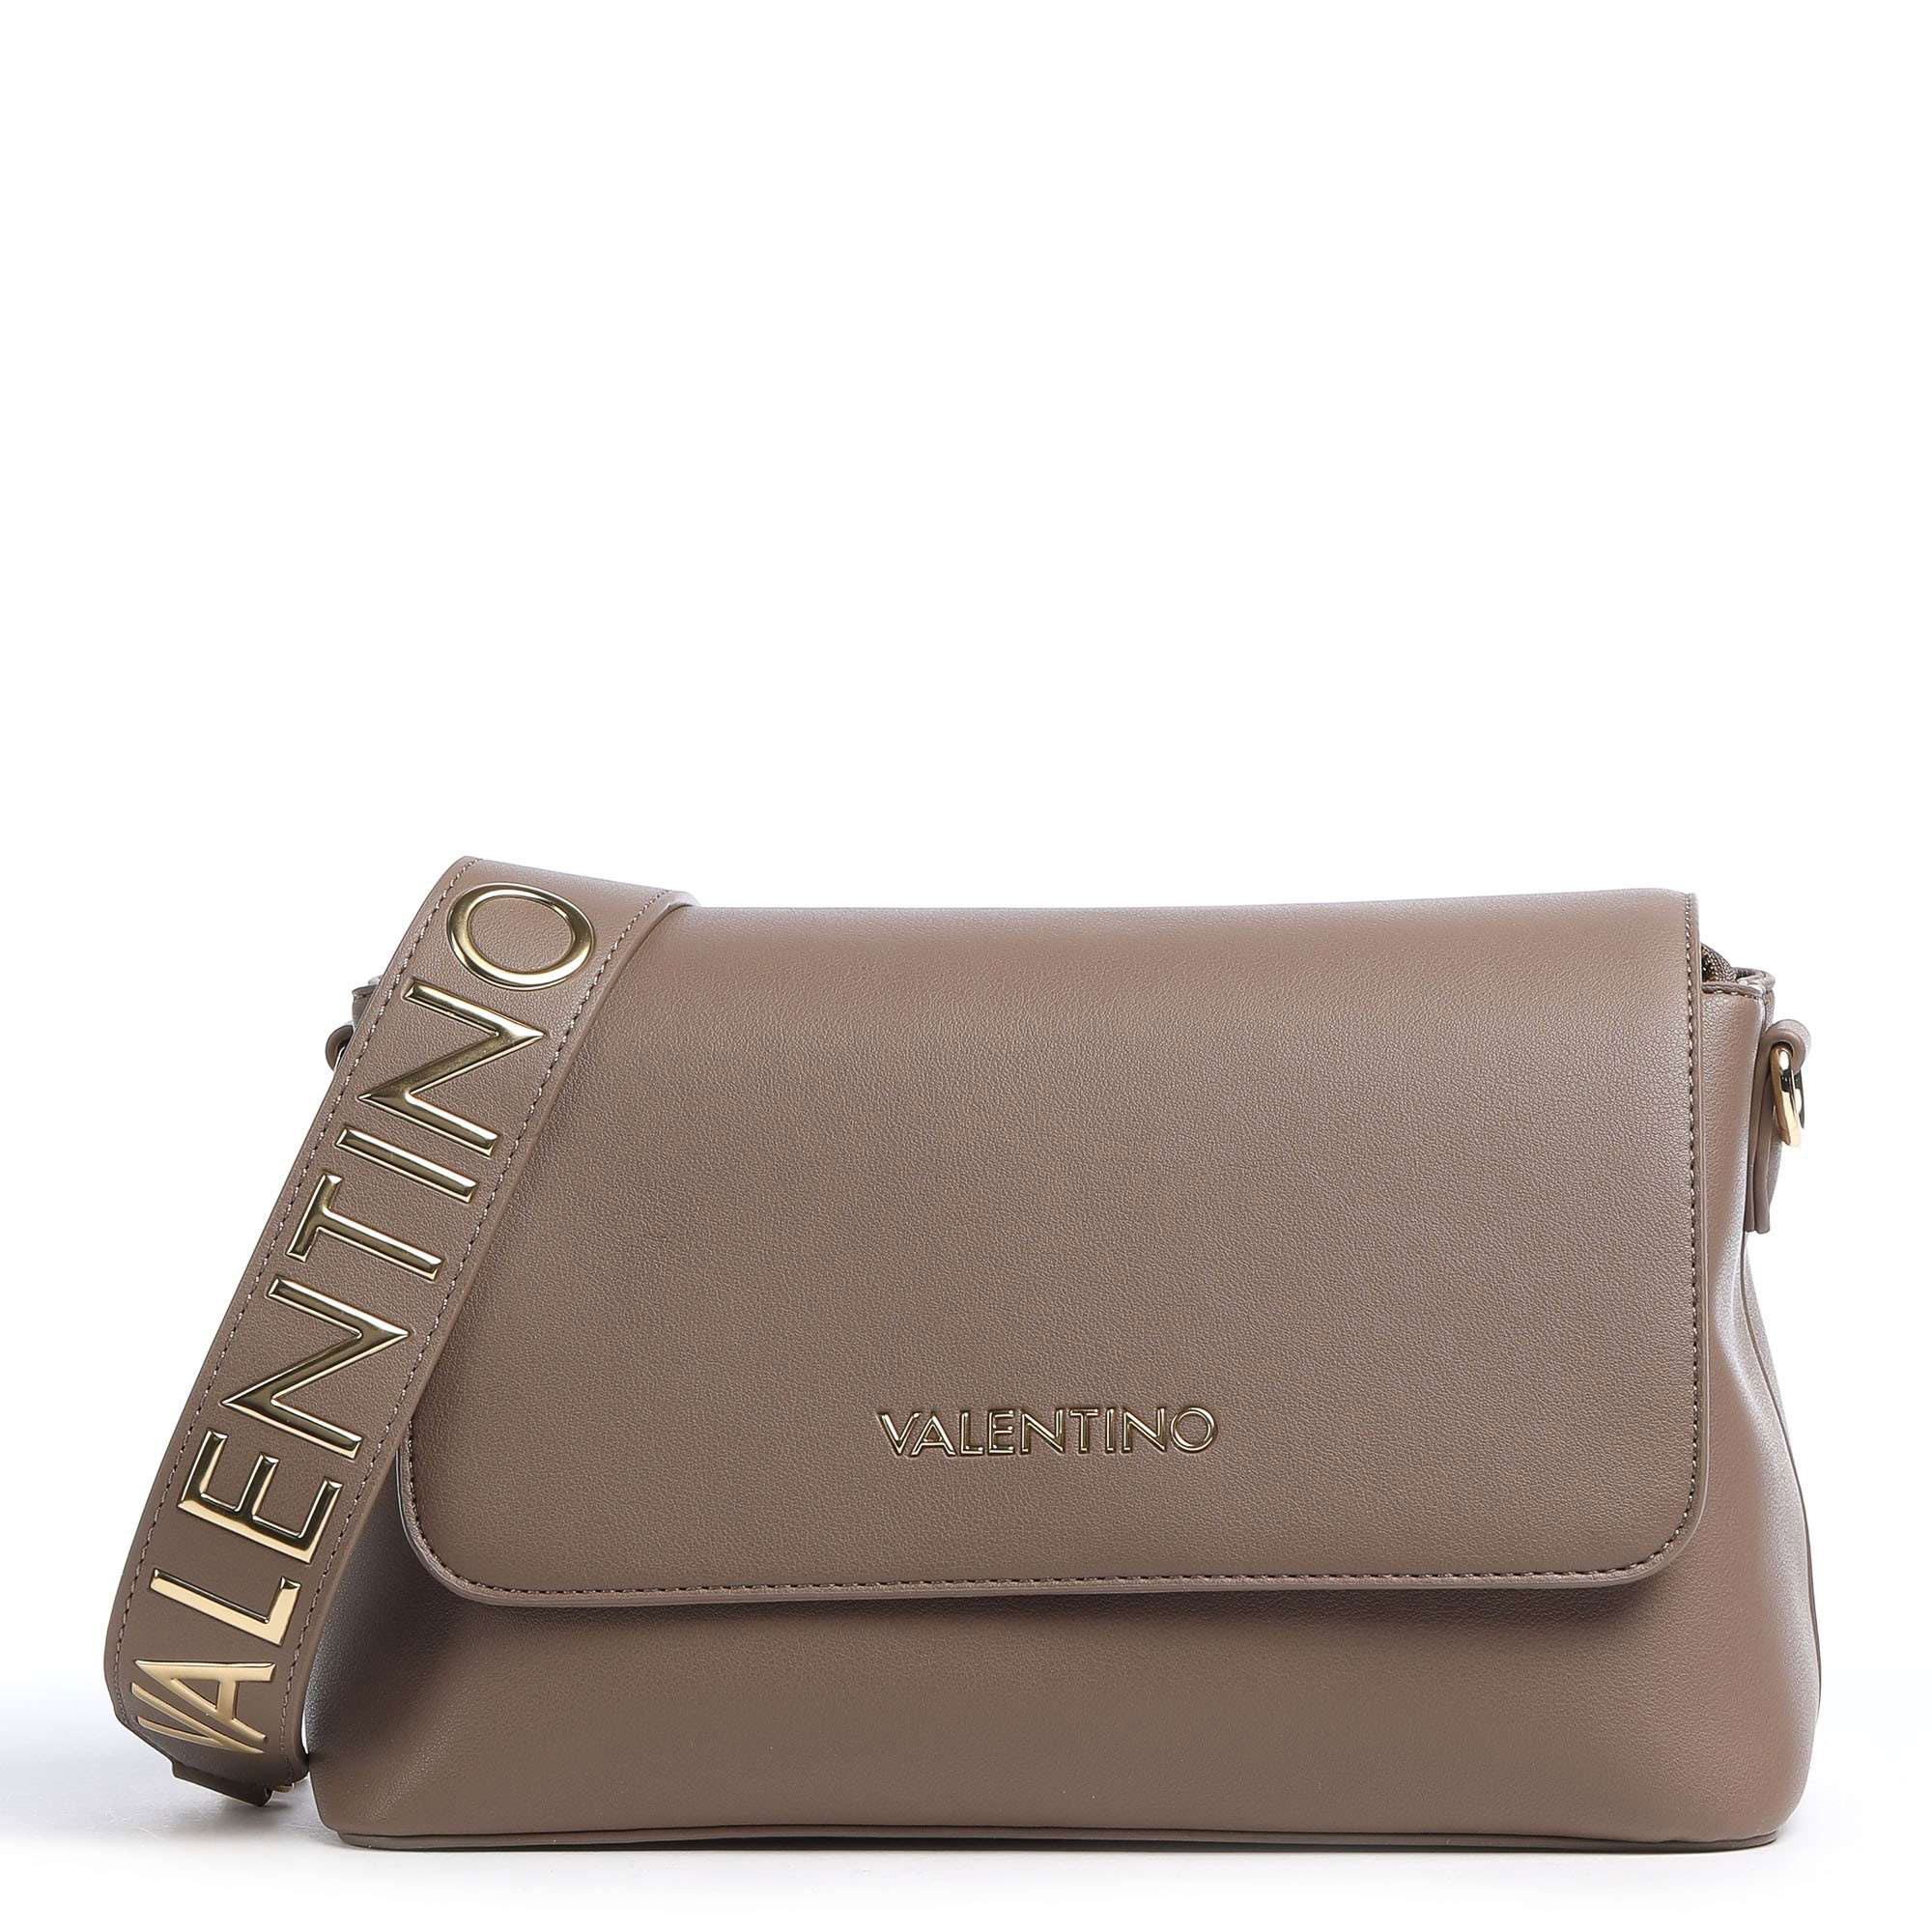 VALENTINO Marroquinería Bolso Olive Taupe VBS5JM03-TAUPE